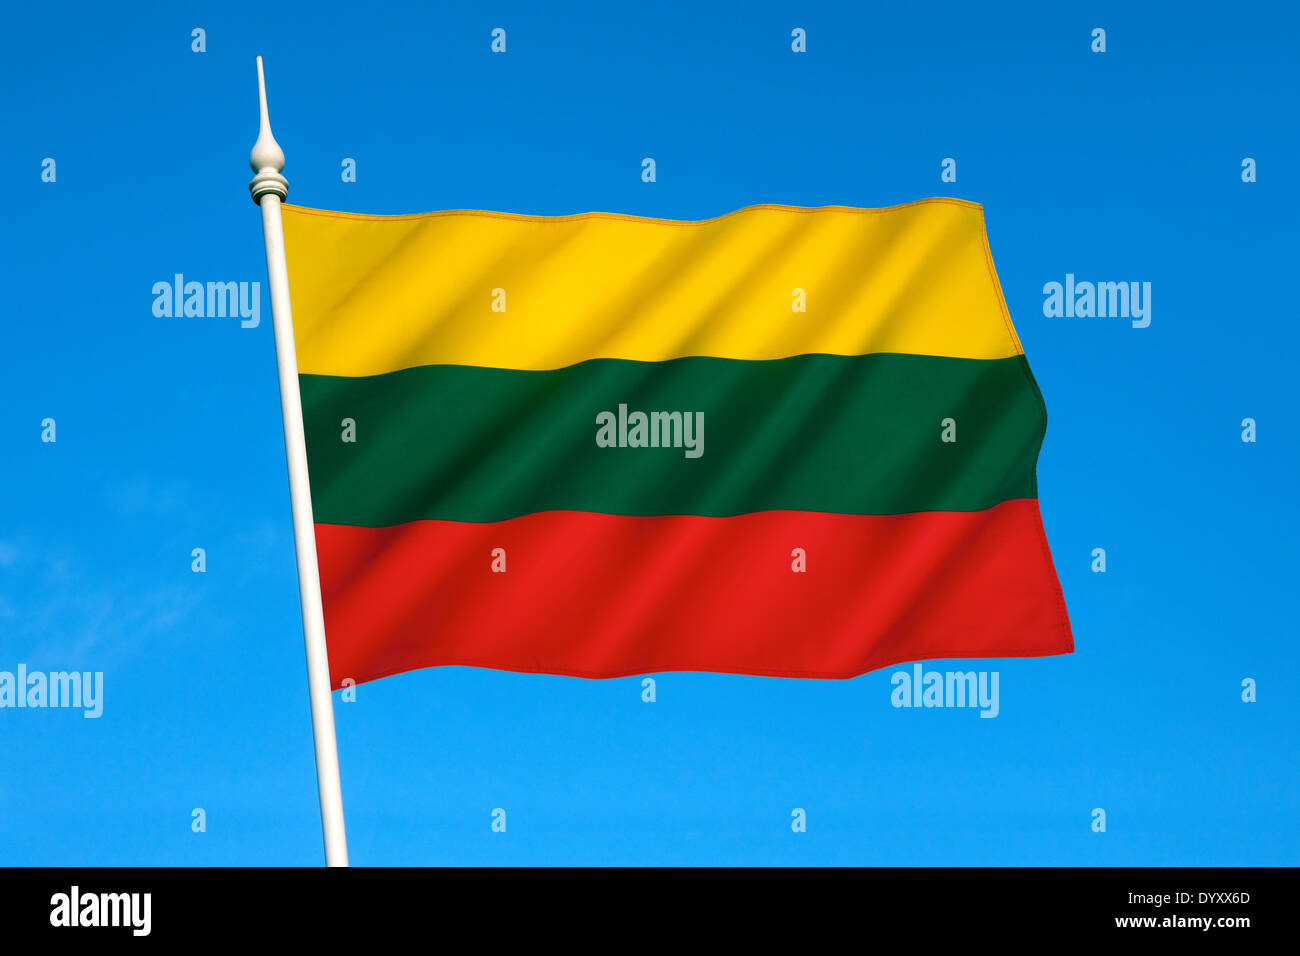 The flag of Lithuania - Stock Image